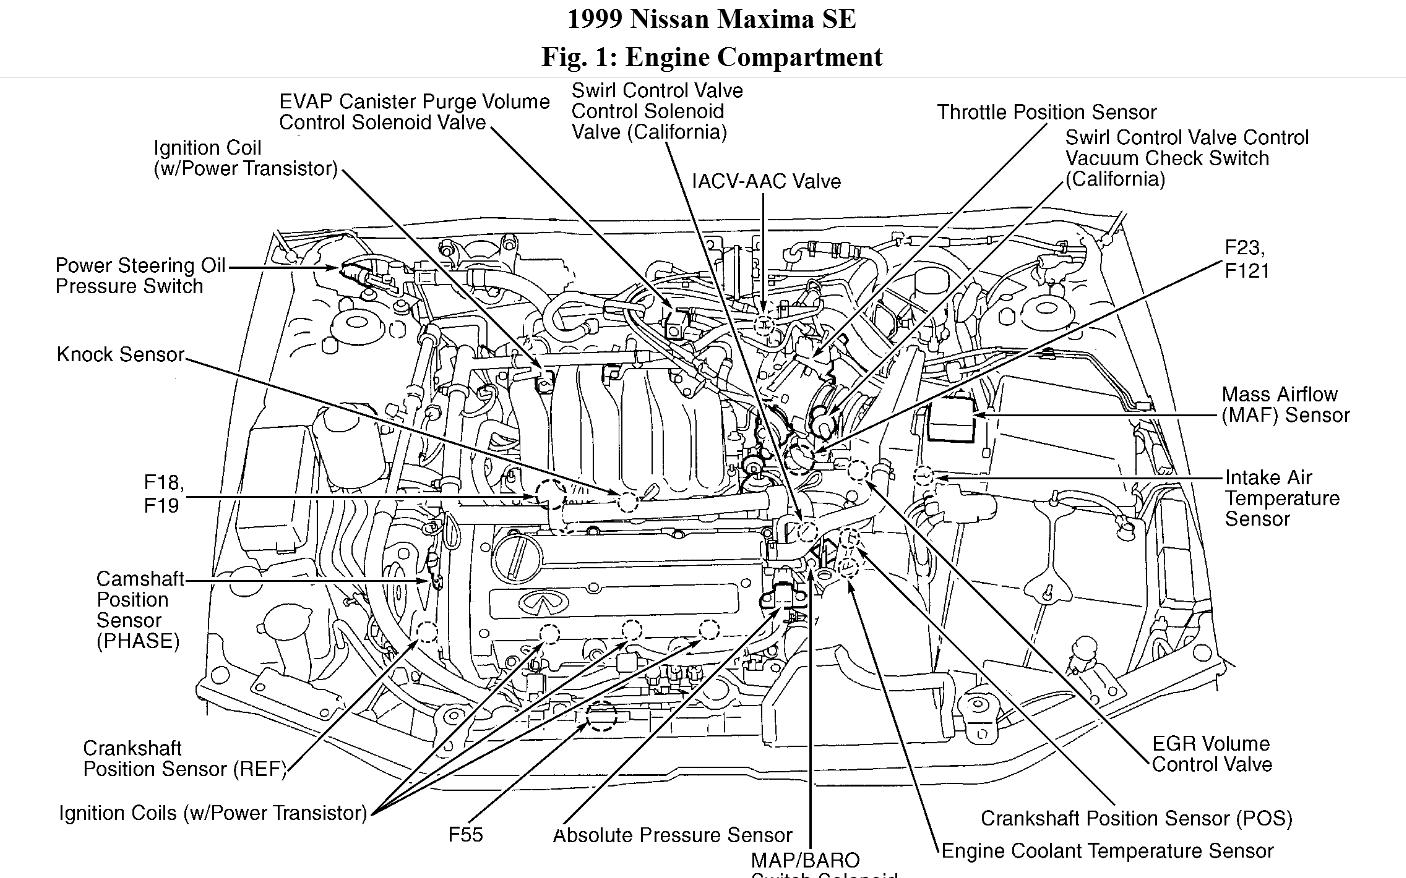 Wiring Diagram Database: 2000 Nissan Maxima Ignition Coil